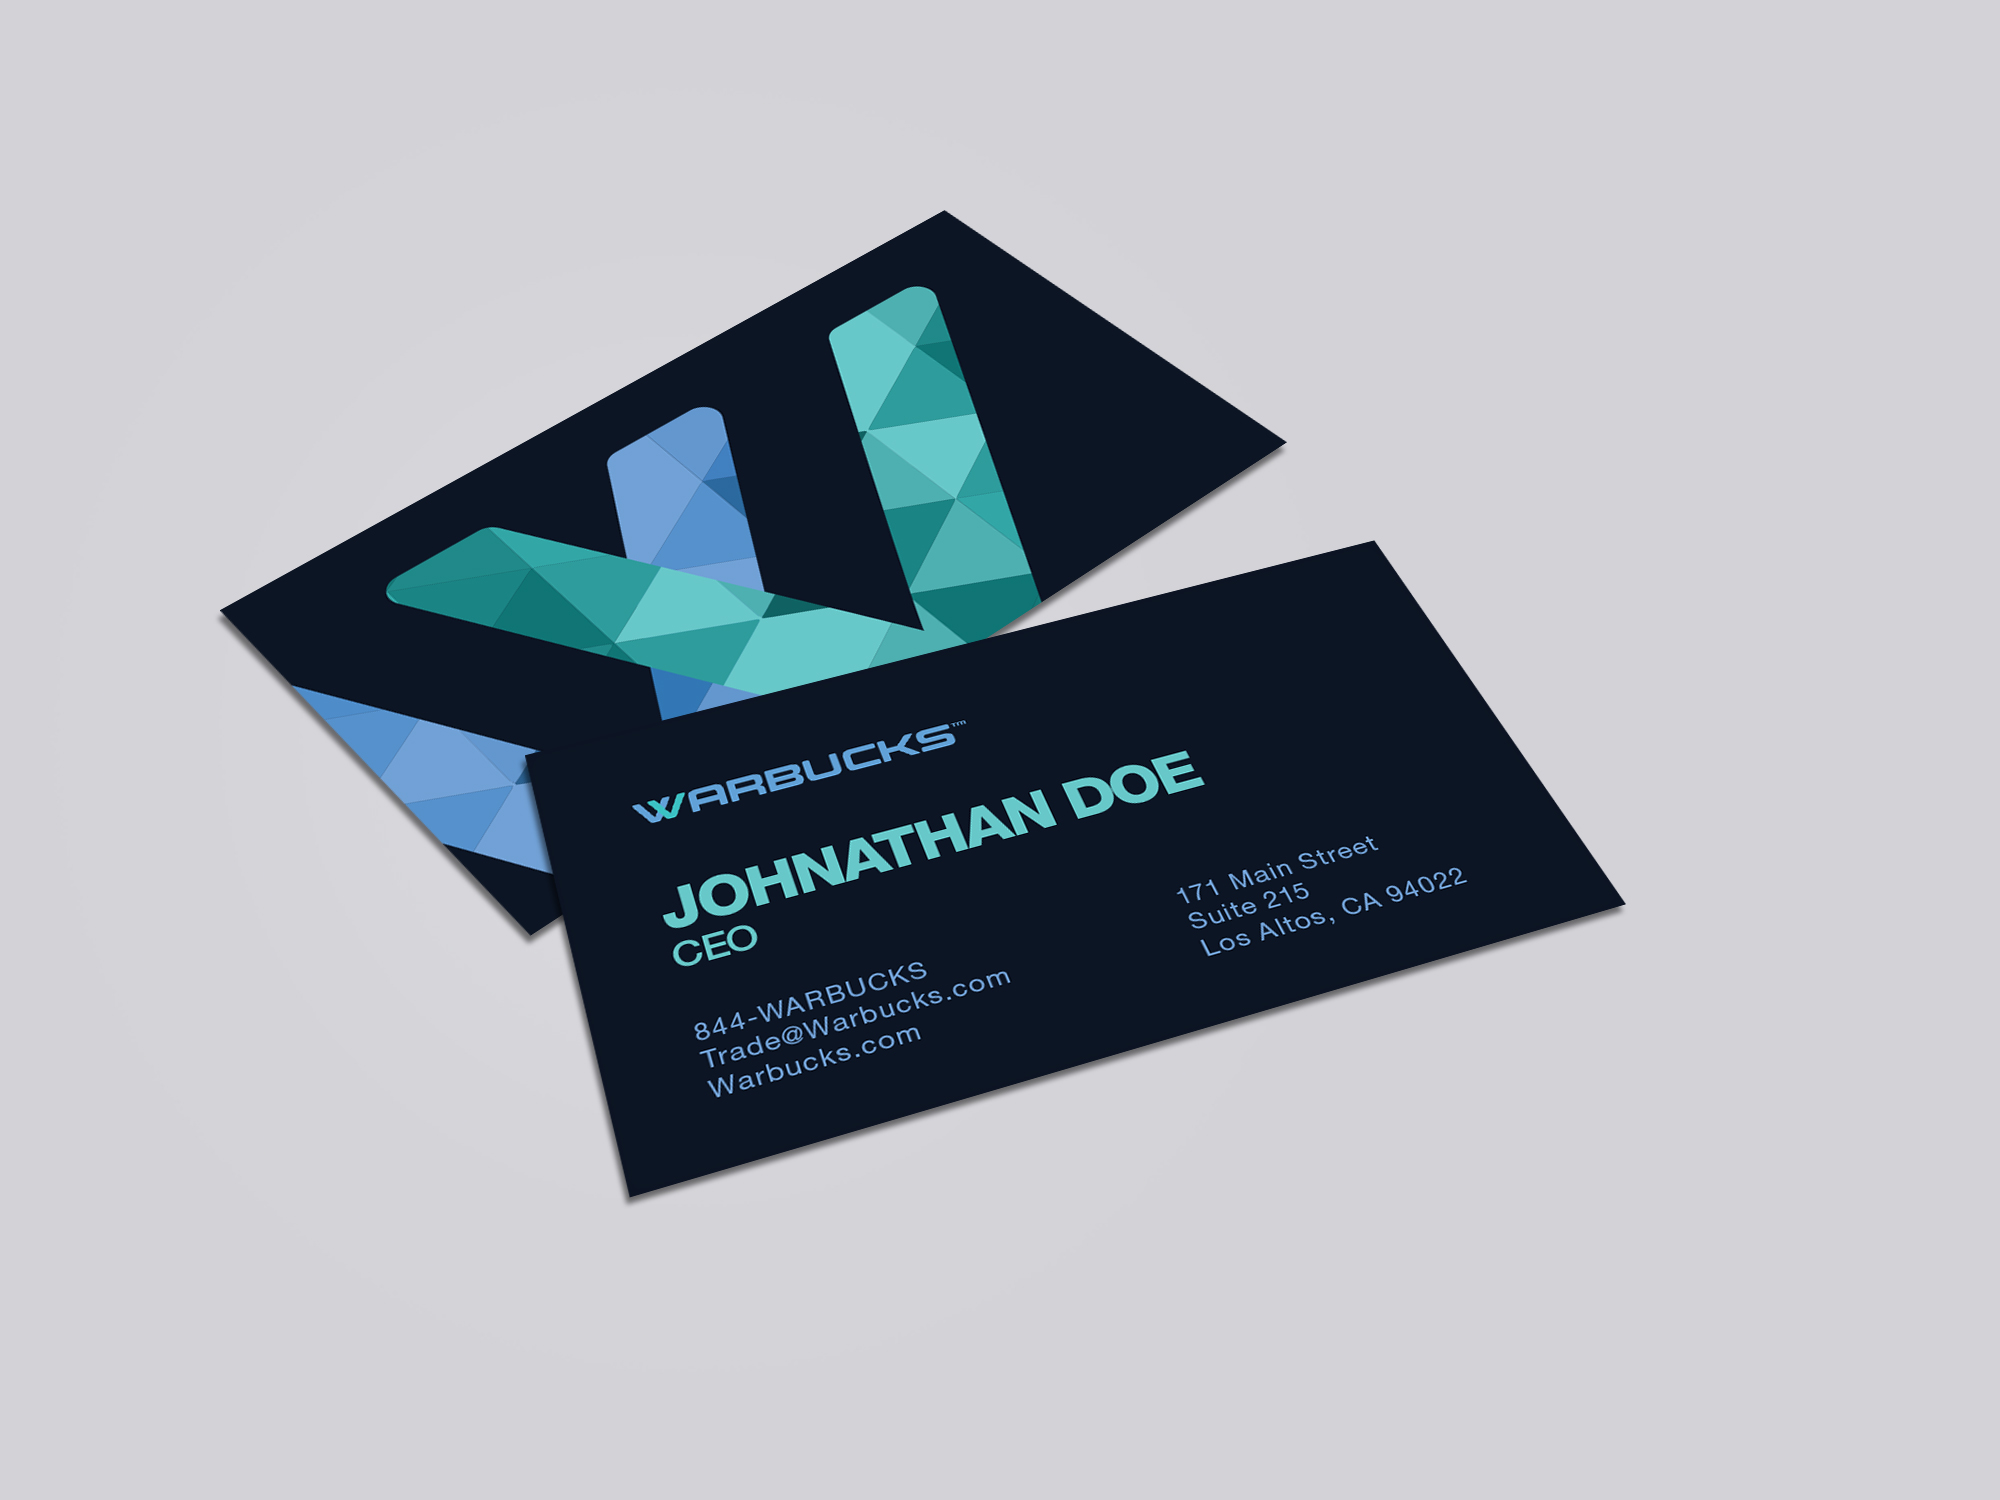 Warbucks_Business_Card